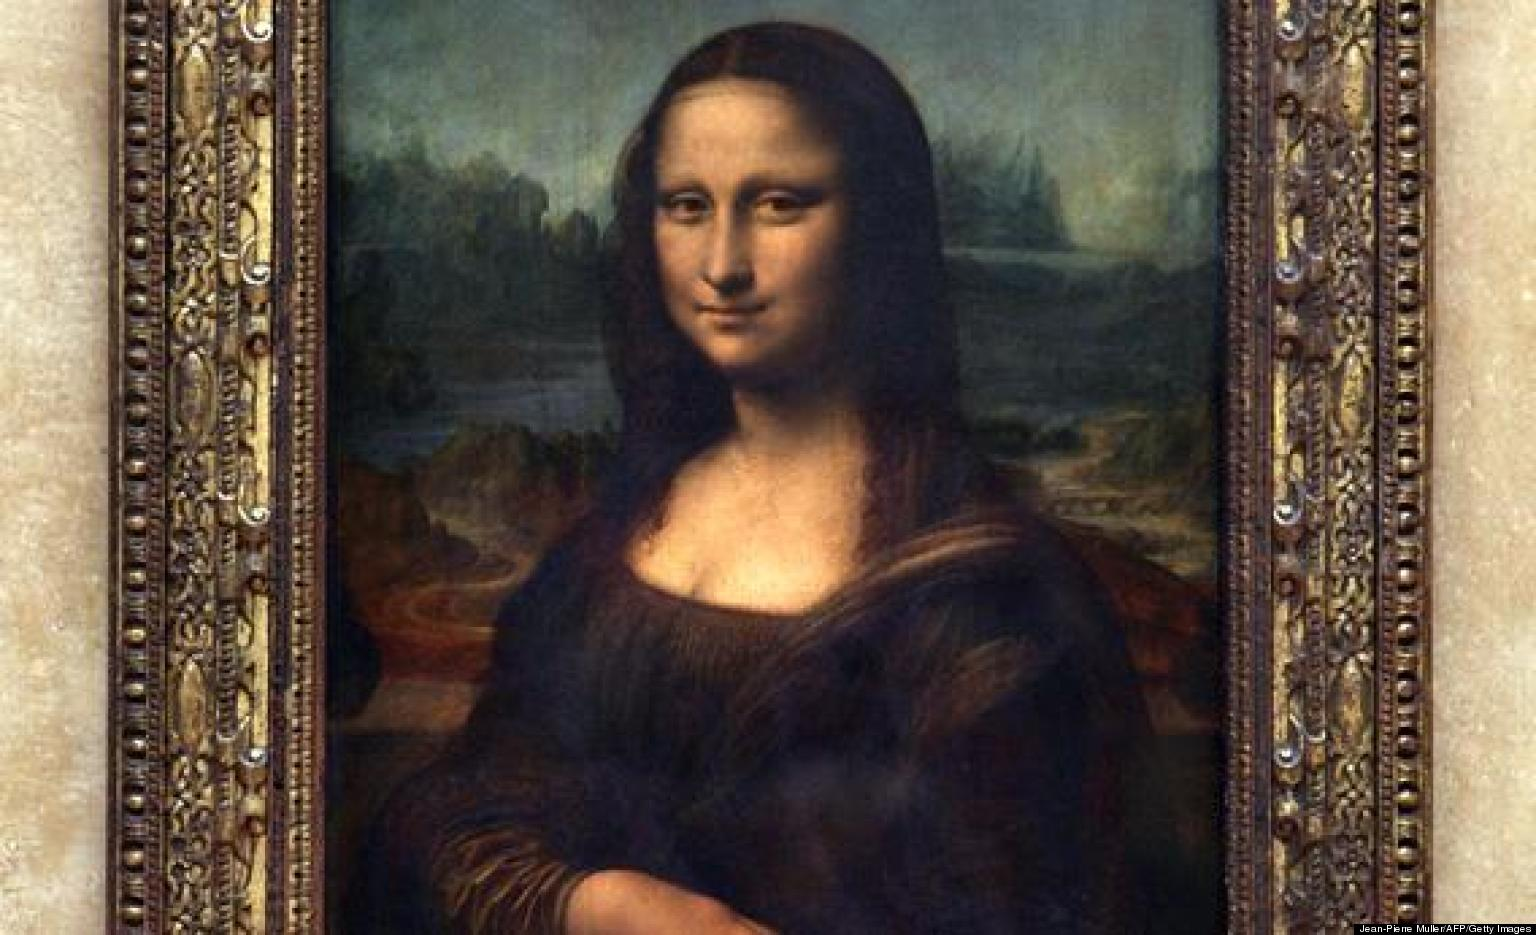 Can Mona Lisa Be Identified By The Skull Of Lisa Gherardini?